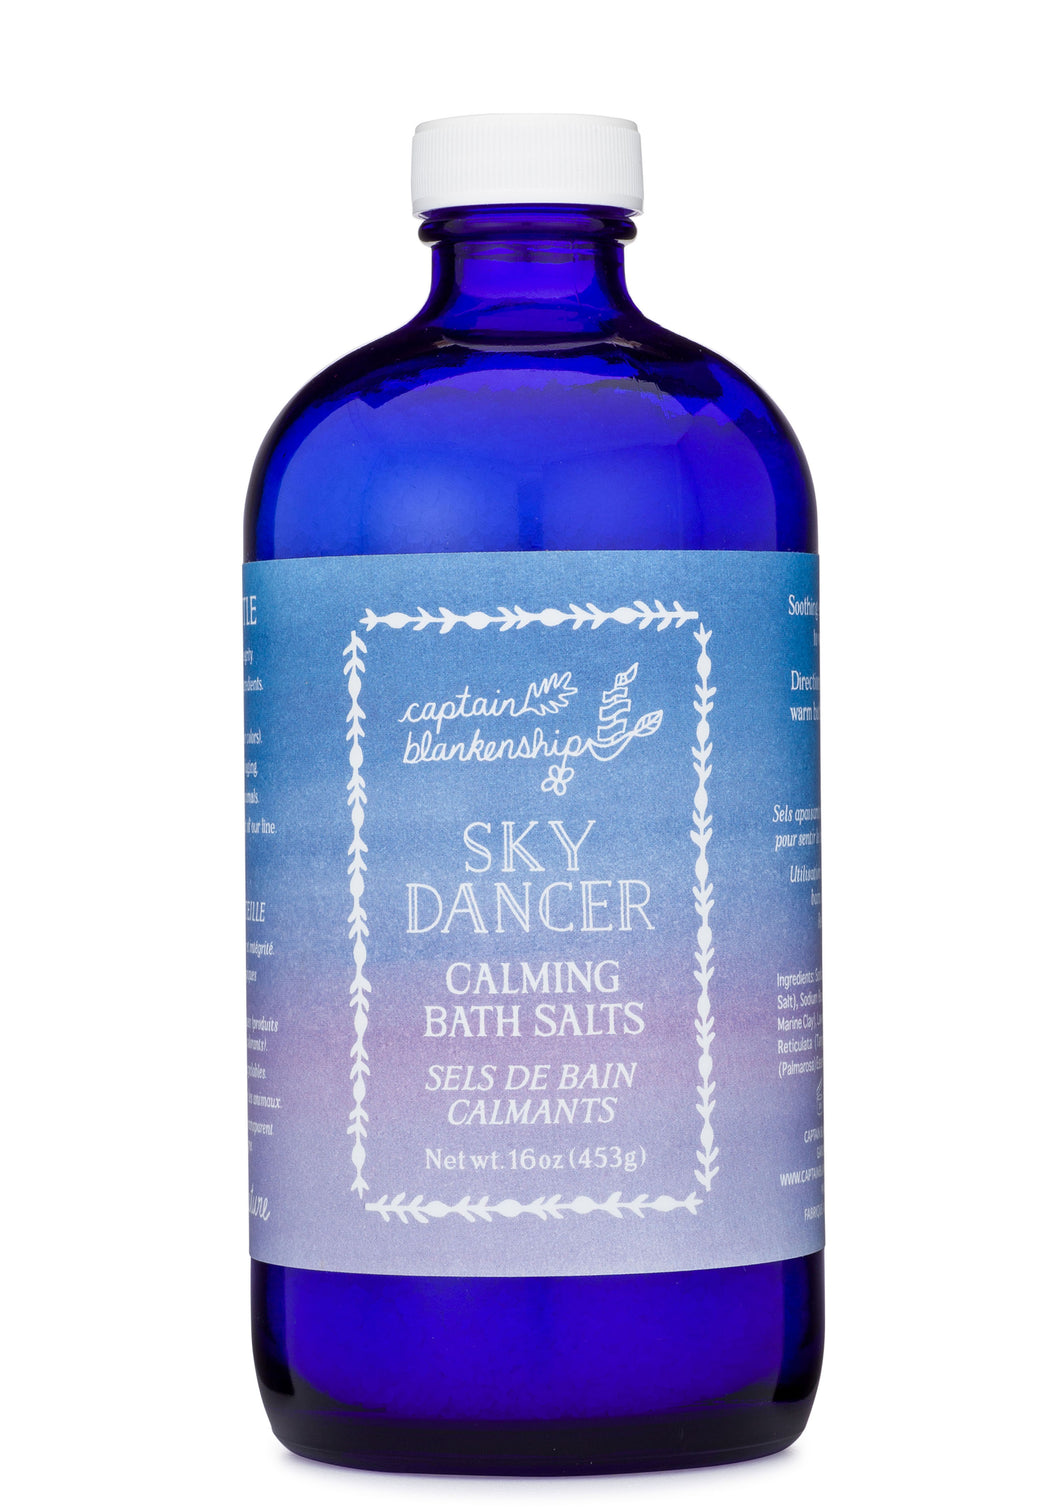 Sky Dancer Calming Bath Salts